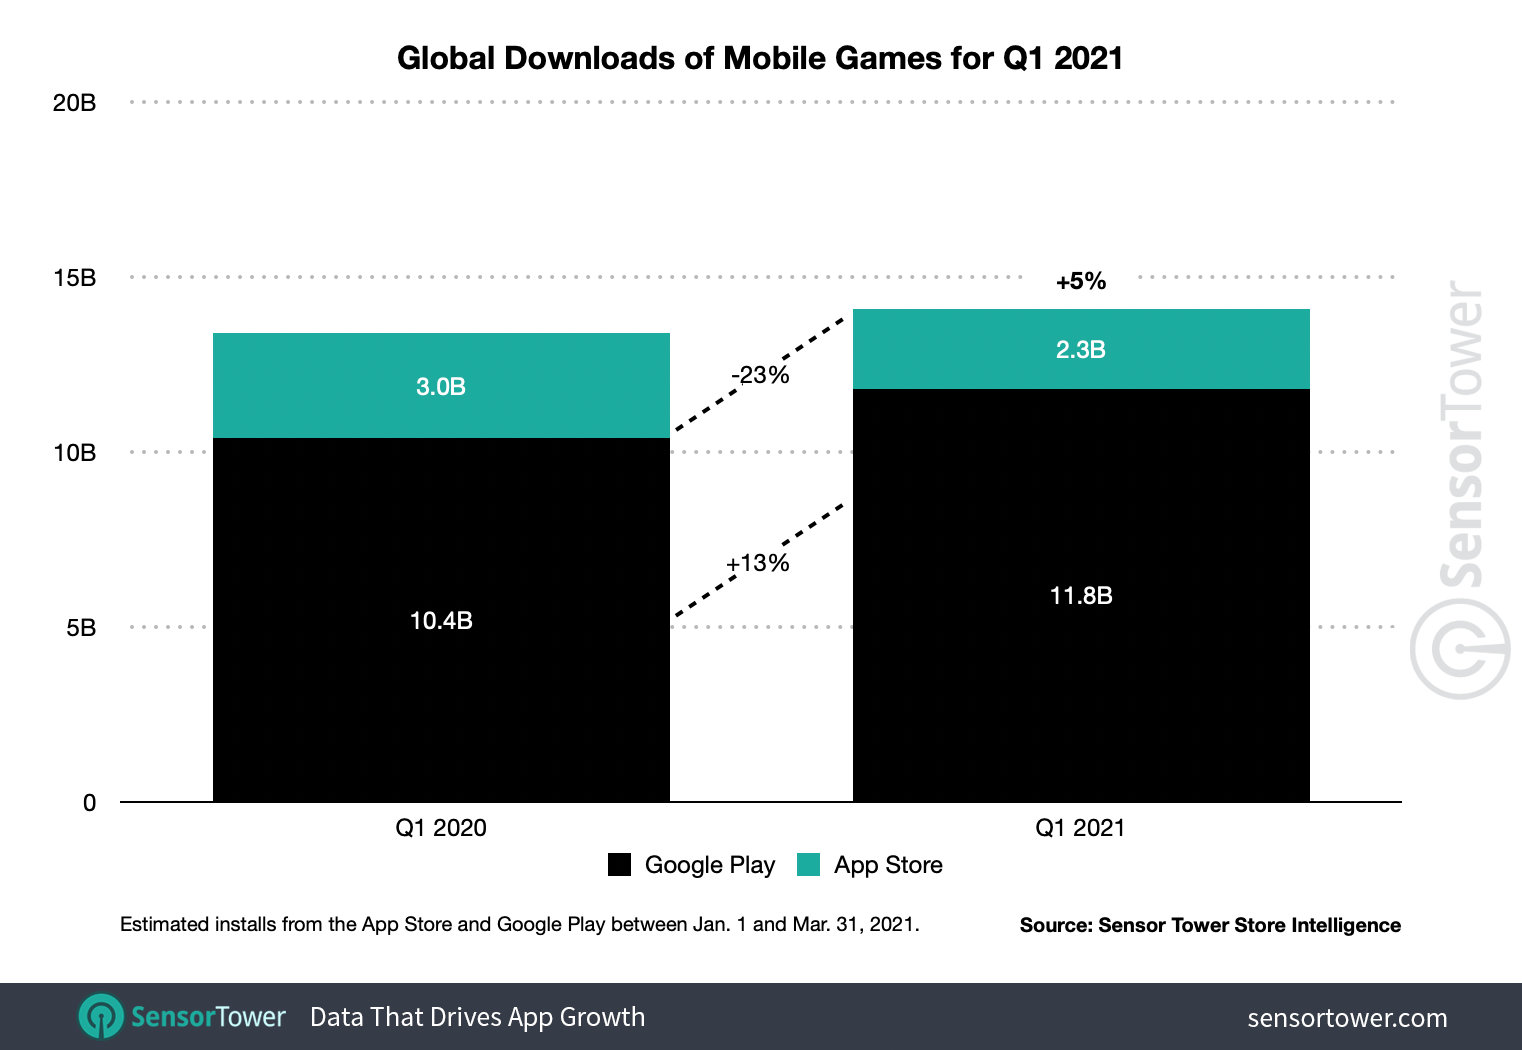 First mobile game installations increased 5% to reach 14.1 billion in 1Q21.